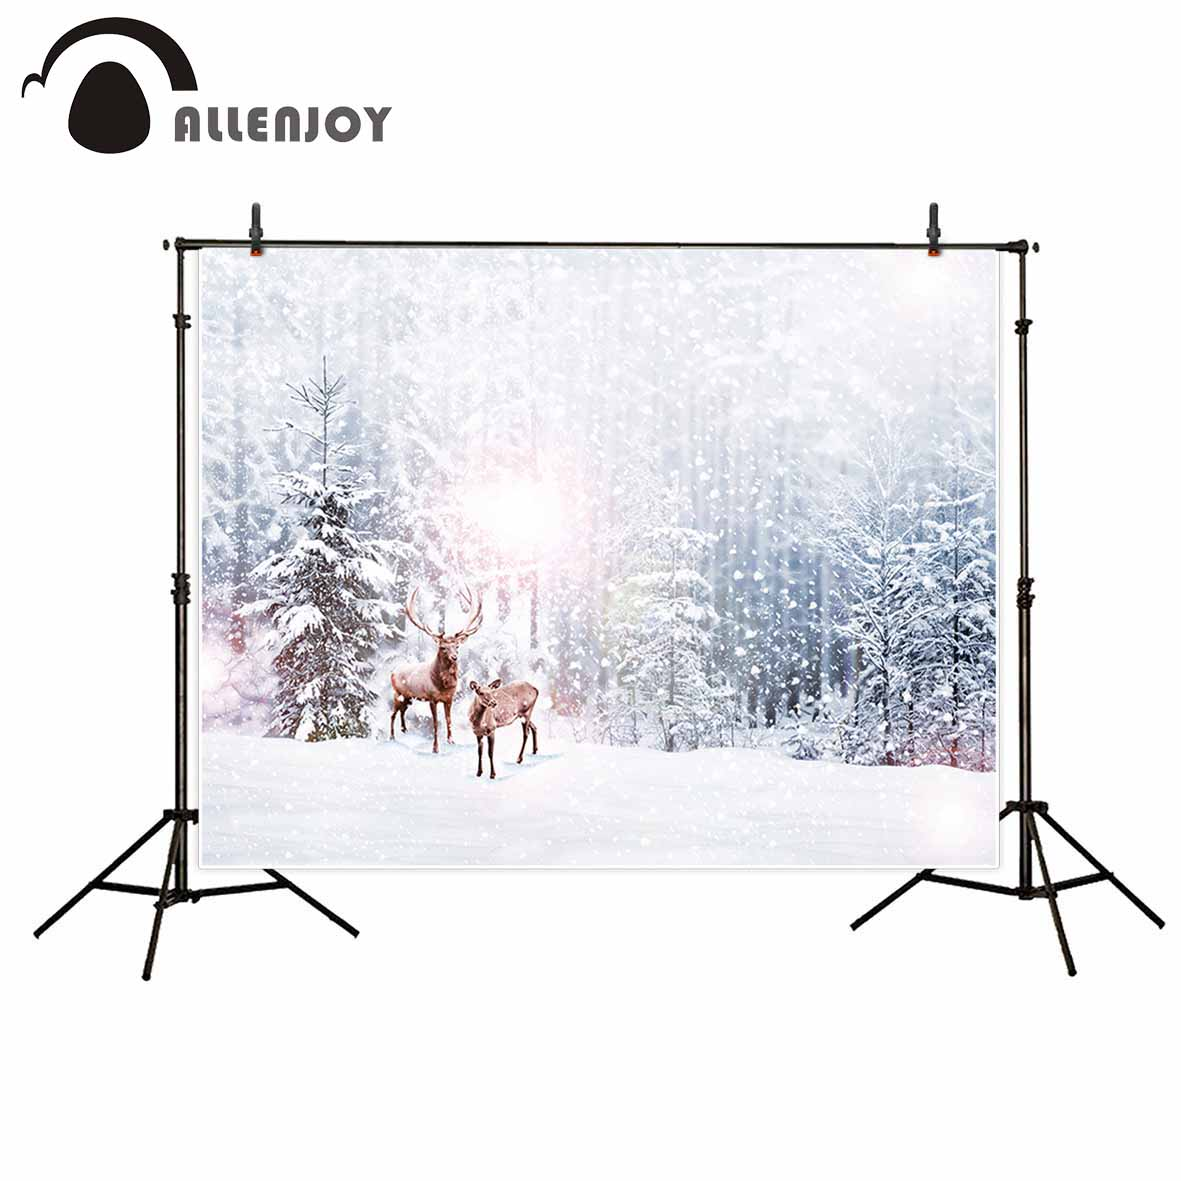 Allenjoy Winter background forest pine elk snow photography backdrops christmas decorations new backdrops photo studio christmas backdrop photography allenjoy snow cap winter snowflakes background photographic studio vinyl children s camera photo